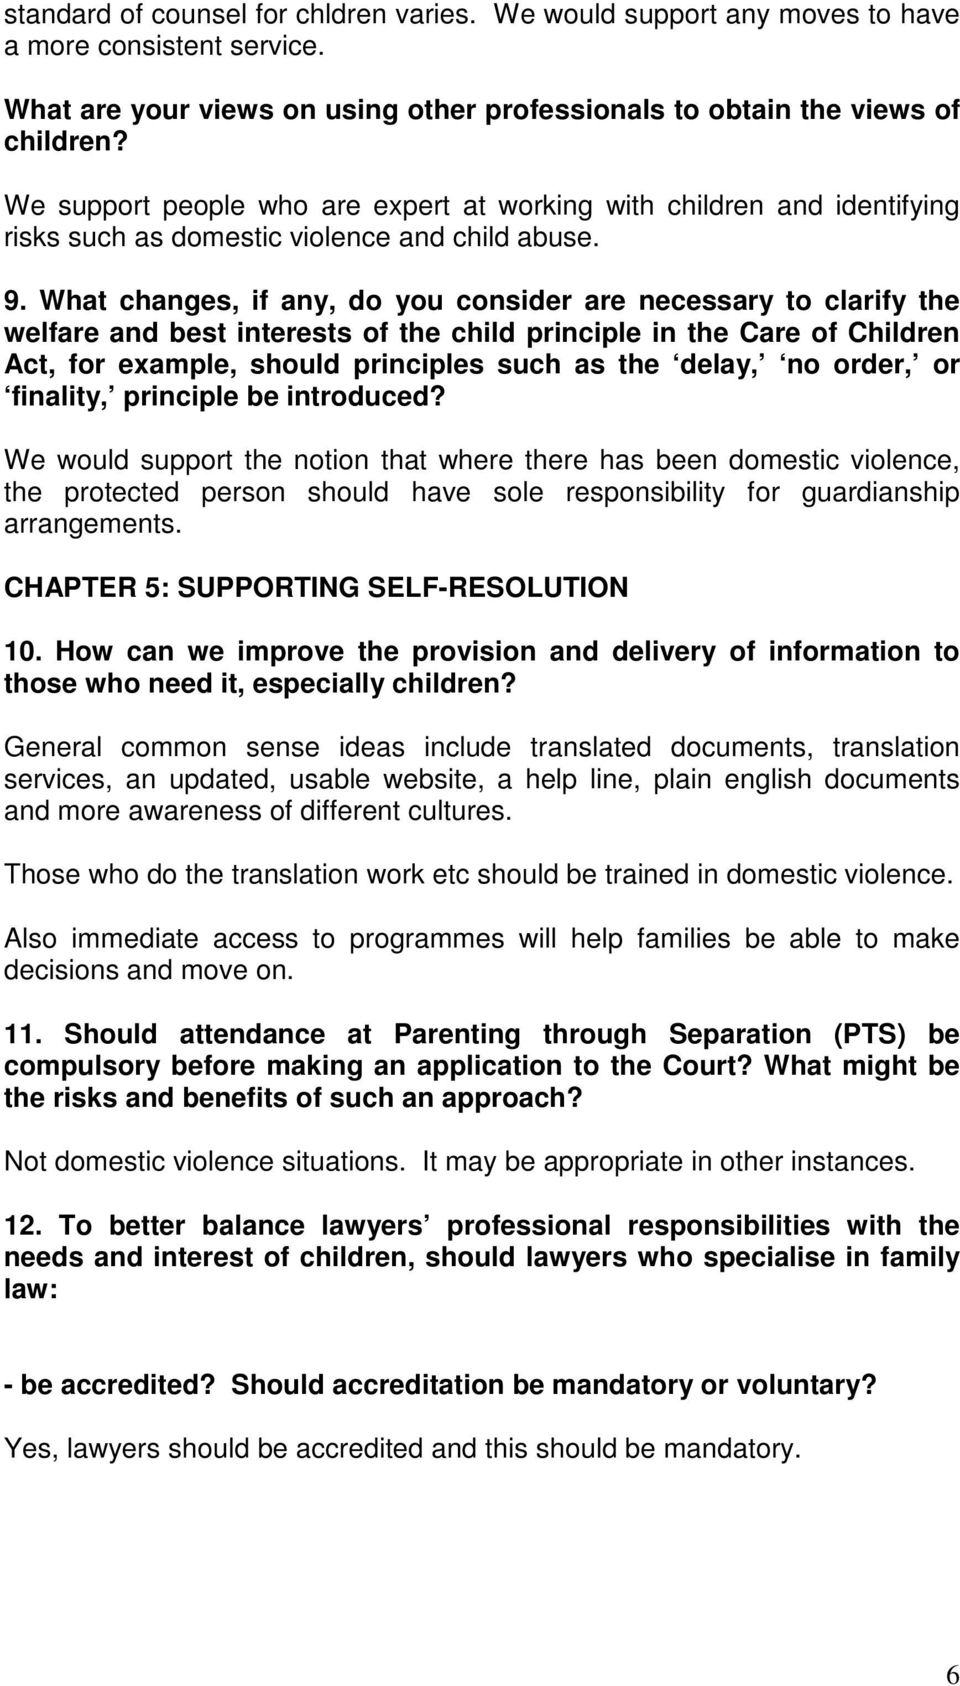 What changes, if any, do you consider are necessary to clarify the welfare and best interests of the child principle in the Care of Children Act, for example, should principles such as the delay, no